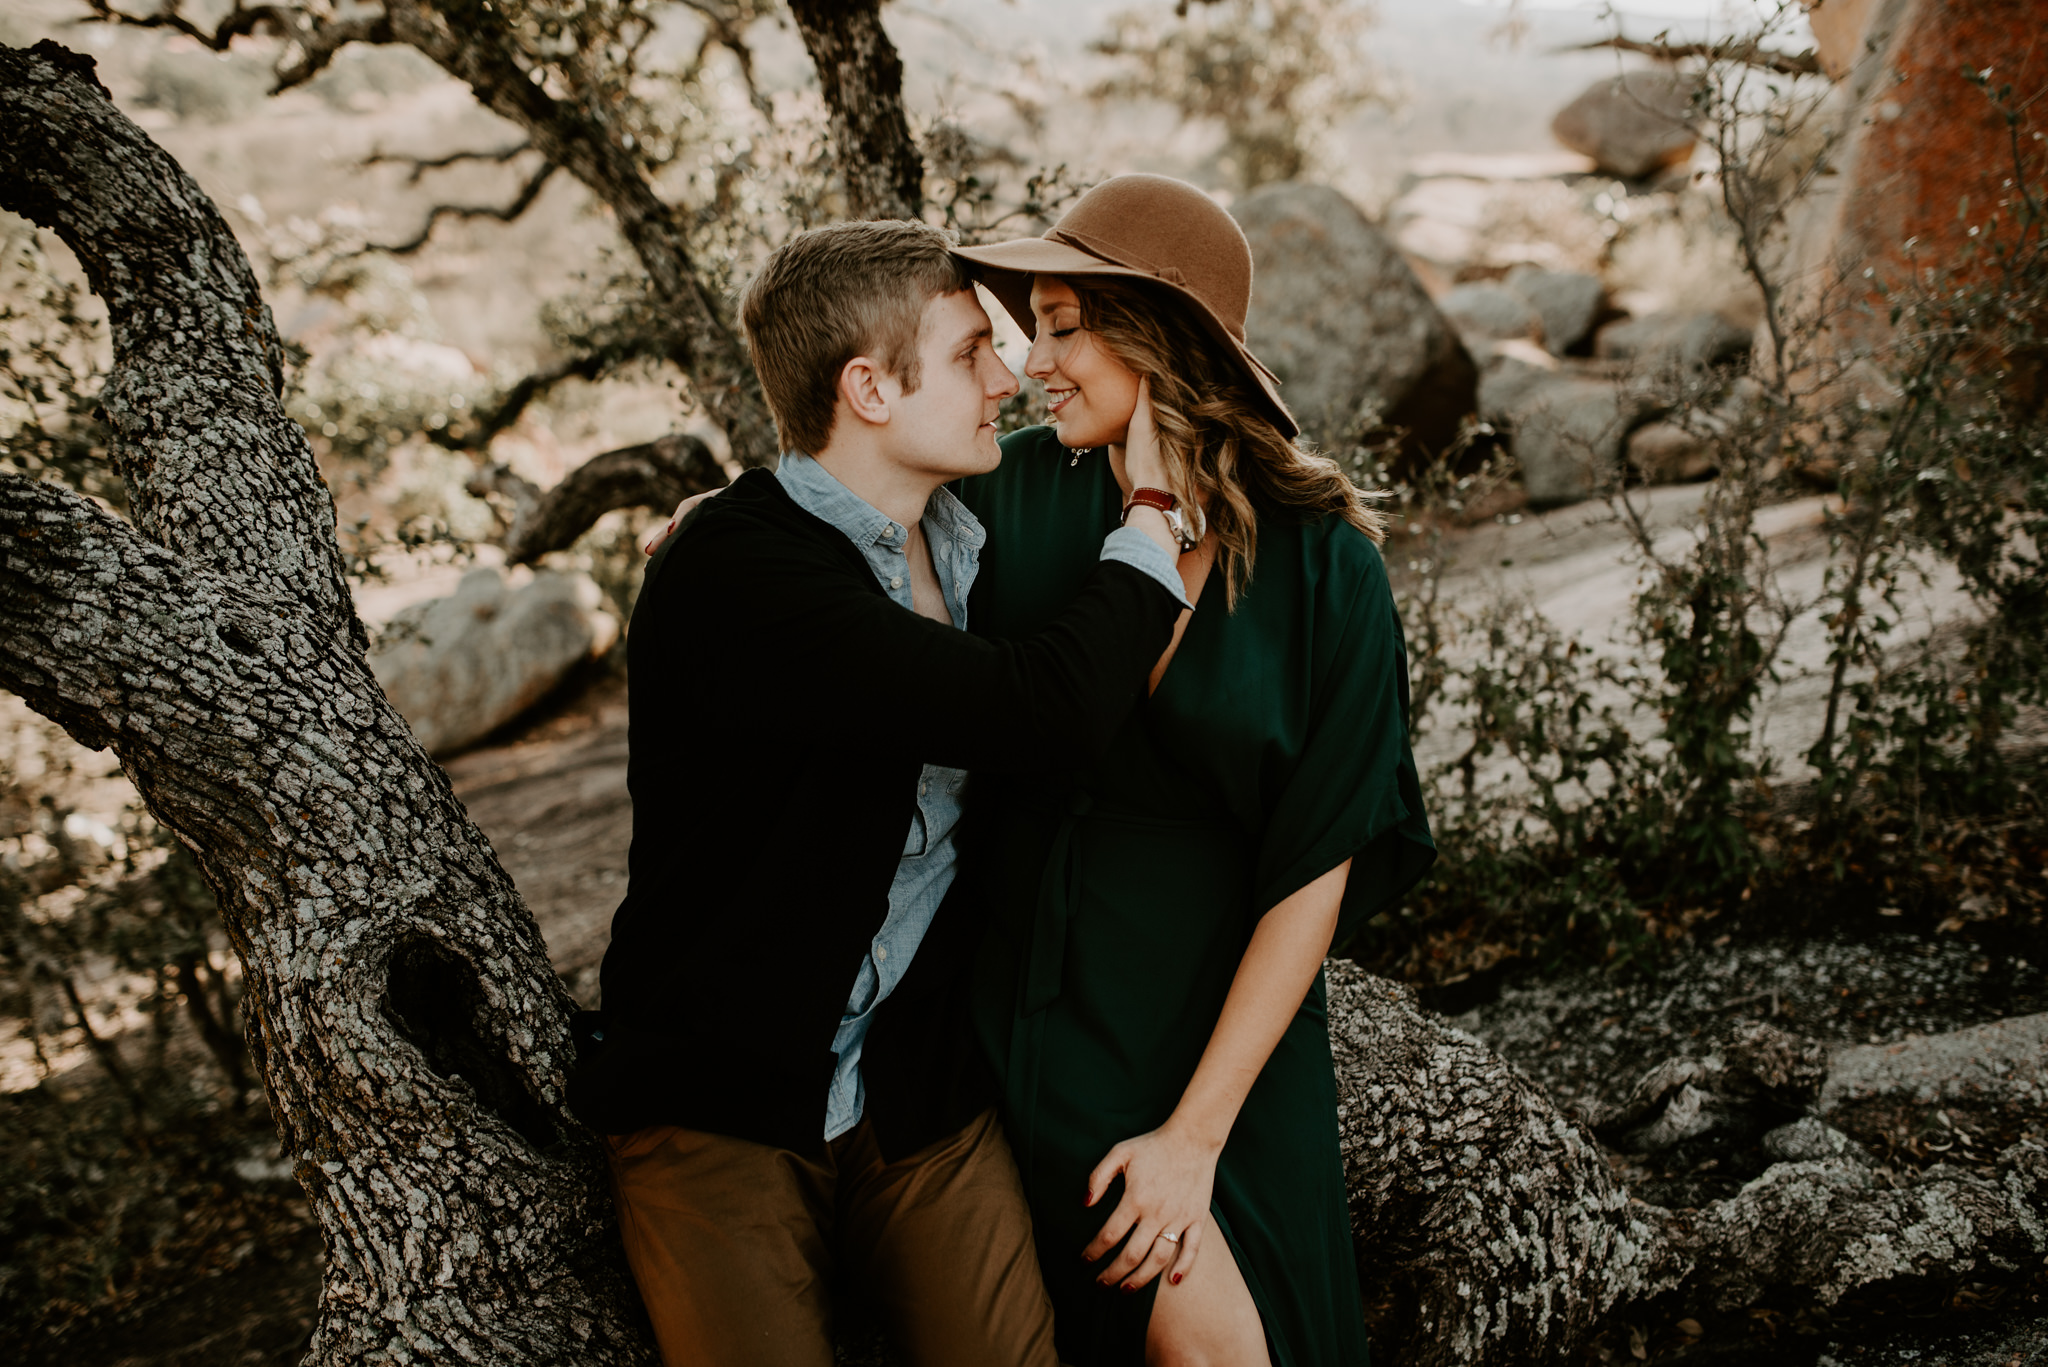 Stunning-Midday-Intimate-Moody-Engagement-Session-at-Enchanted-Rock-Kerlyn-Van-Gelder-Photography-Austin-Wedding-Photographer